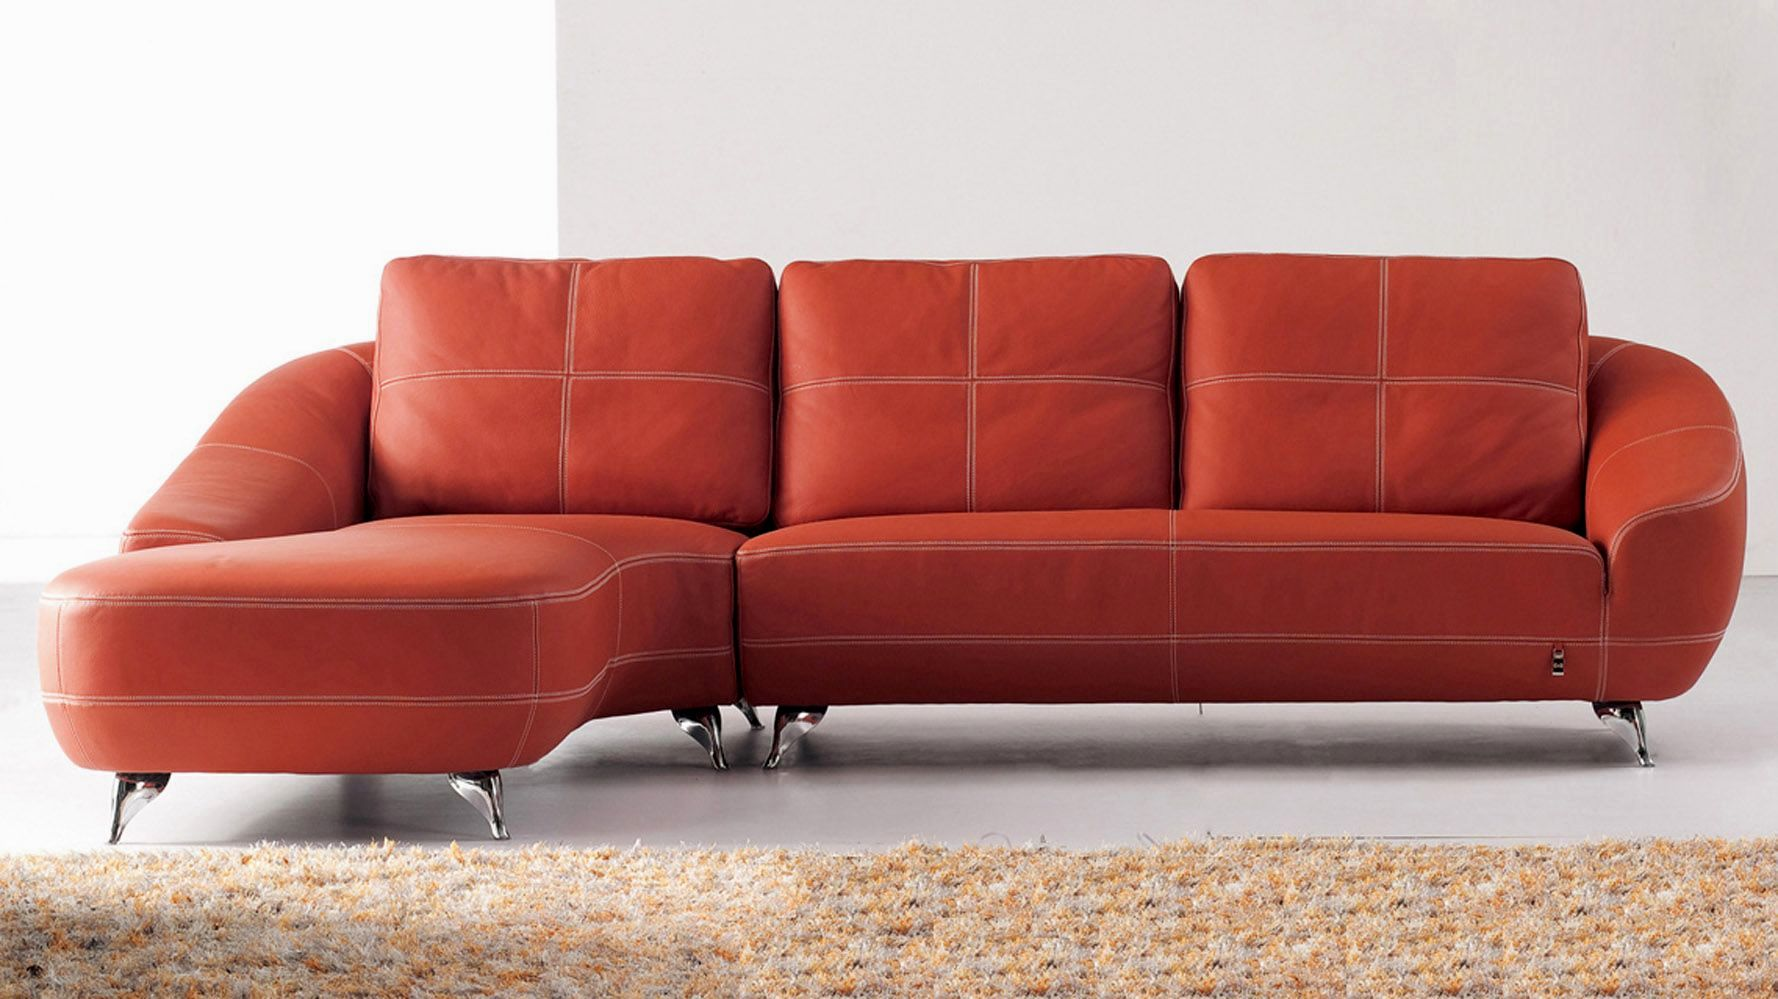 fancy chaise sectional sofa picture-Luxury Chaise Sectional sofa Décor